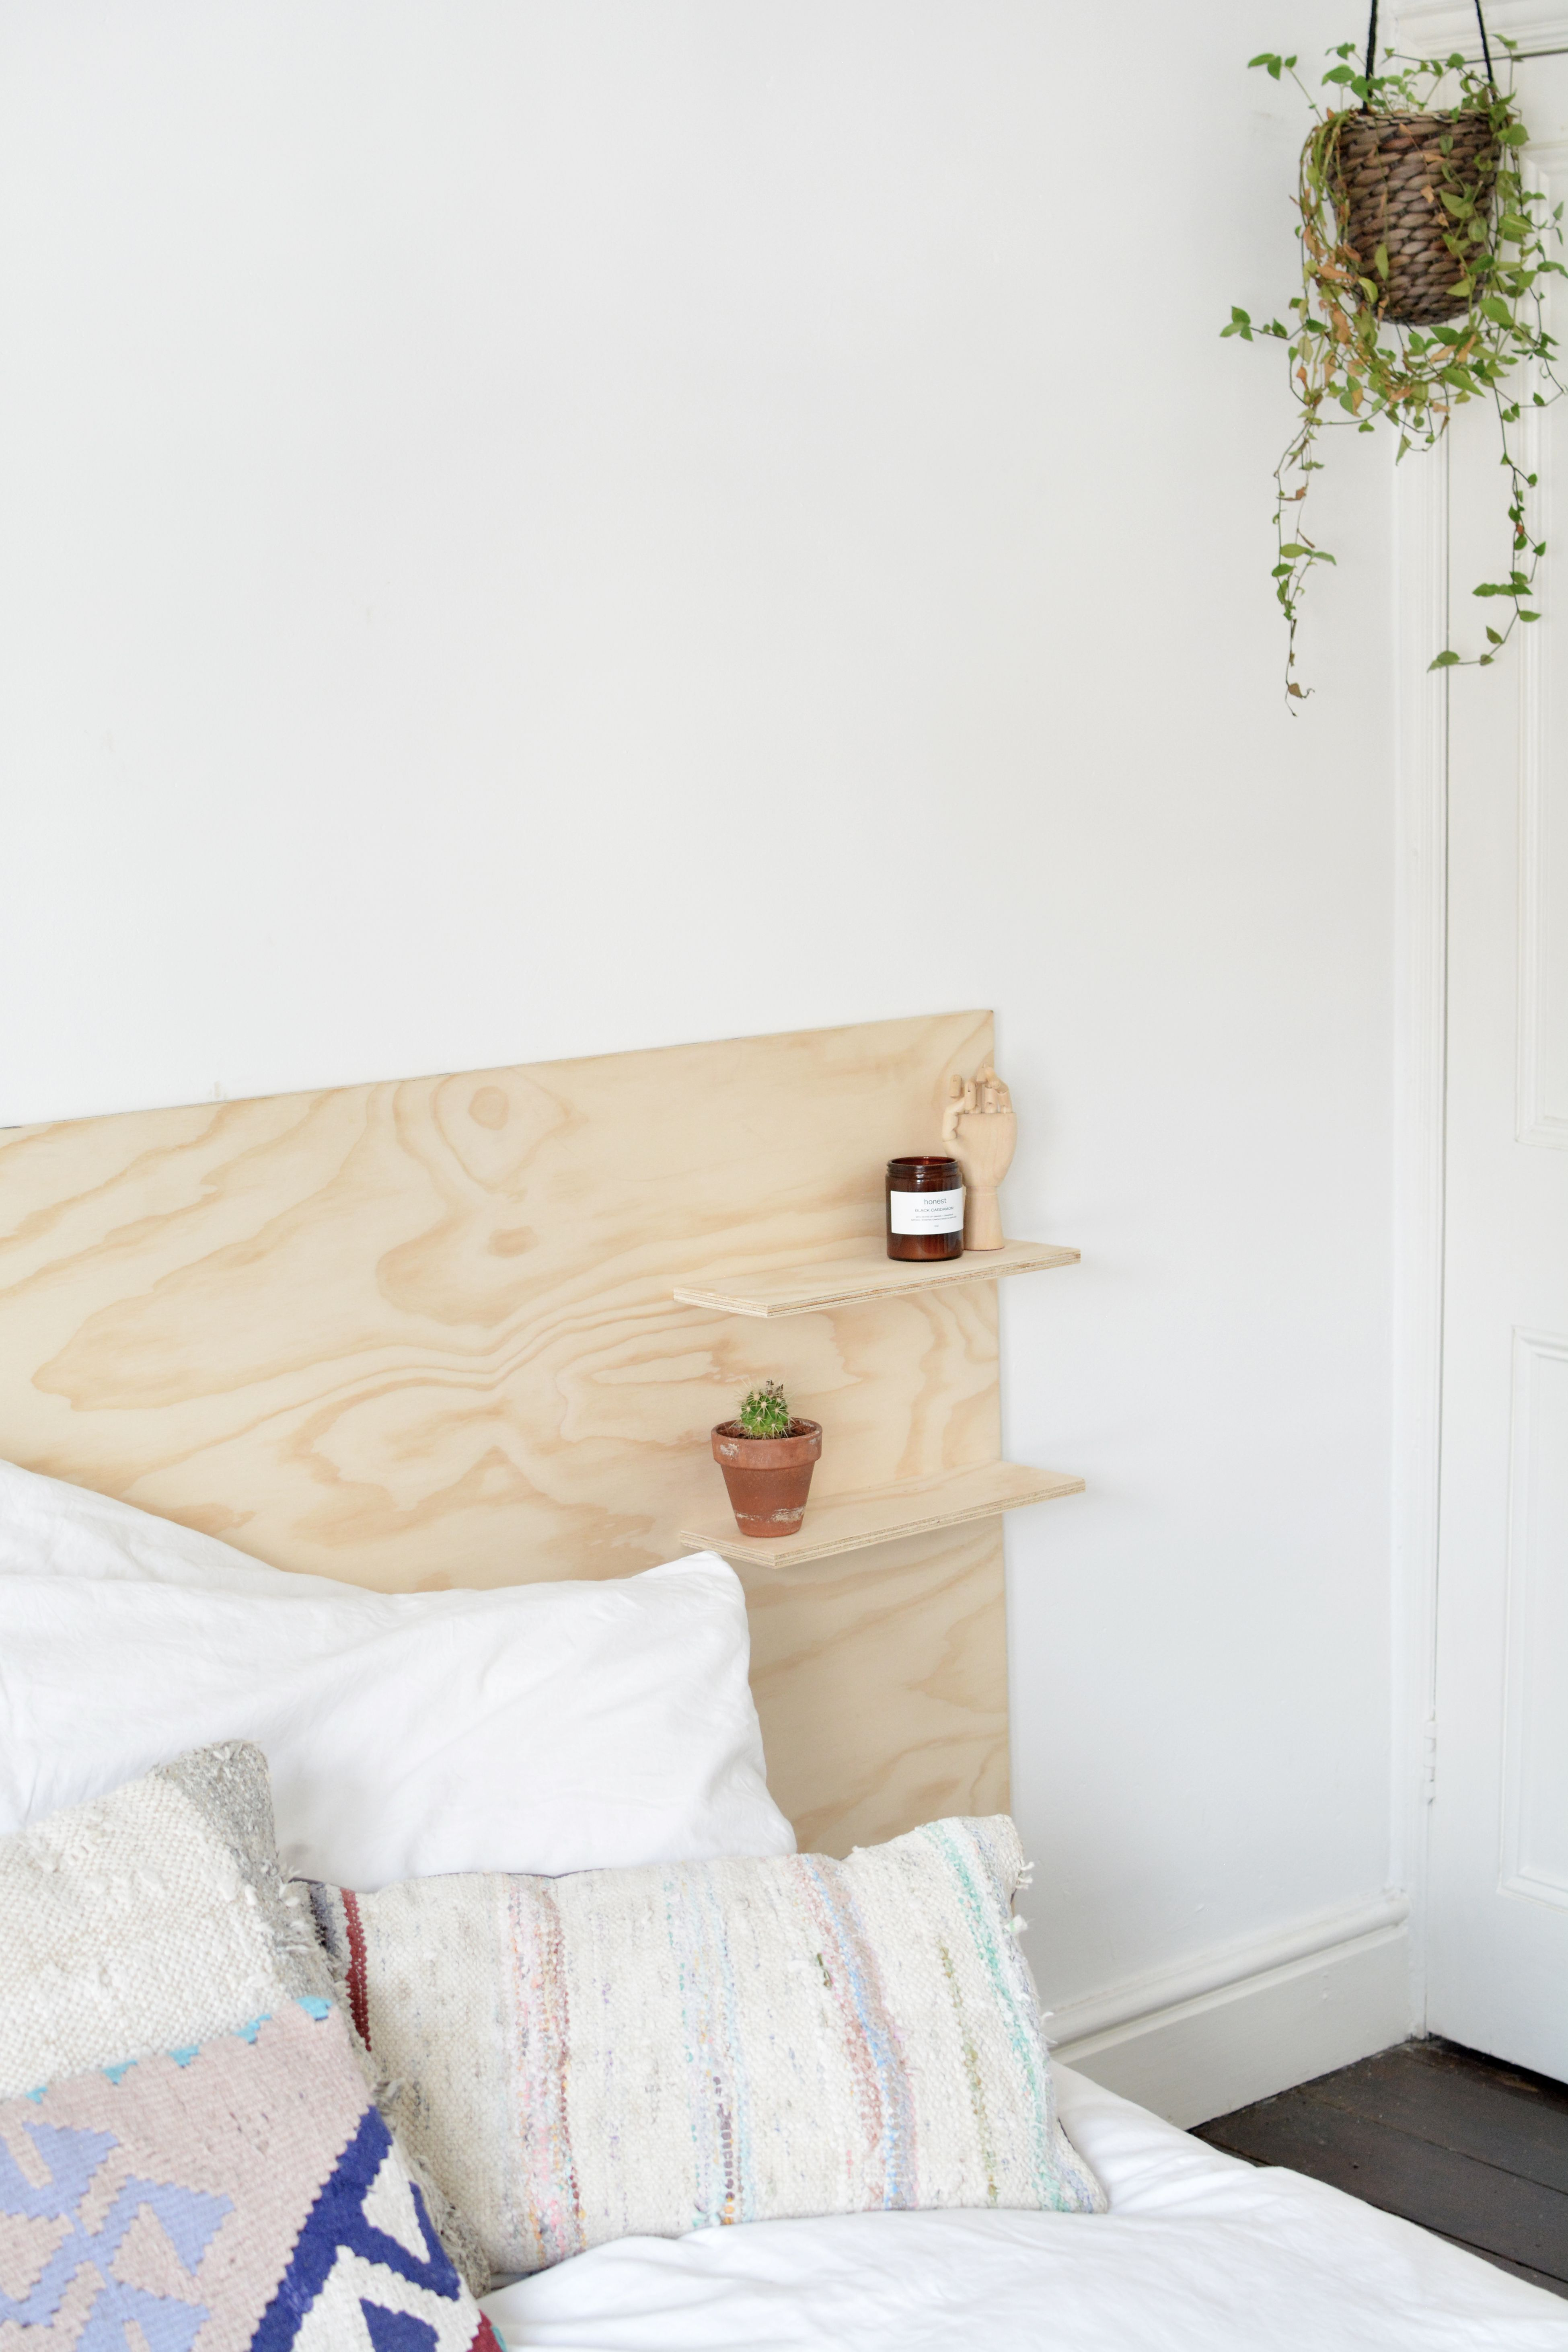 Easy To Make Modern Plywood Headboard With Built In Shelves Diy